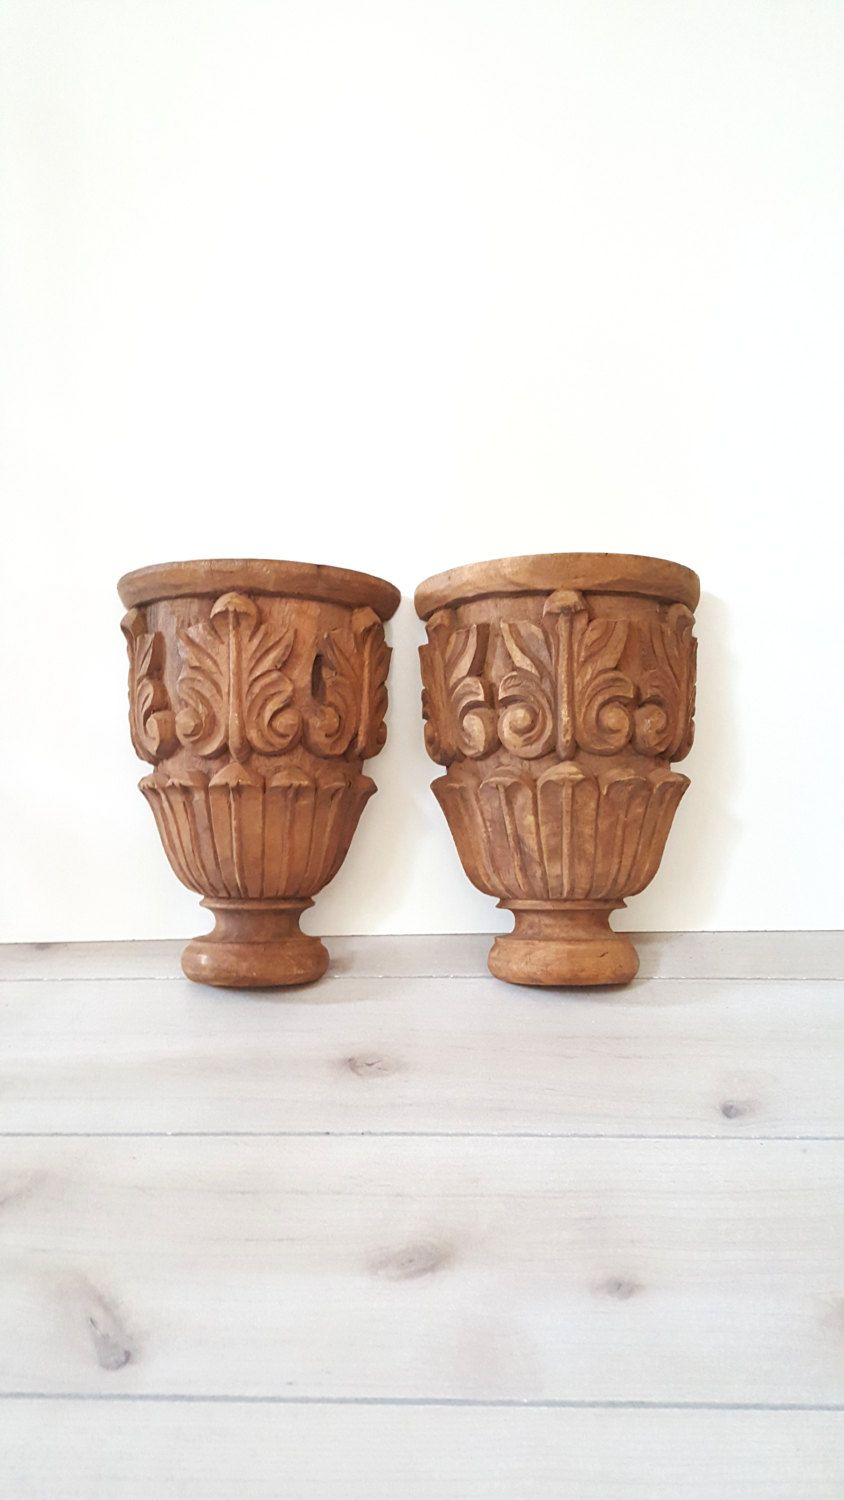 Antique Large Pair Wood Hand Carved Wall Shelf Wall